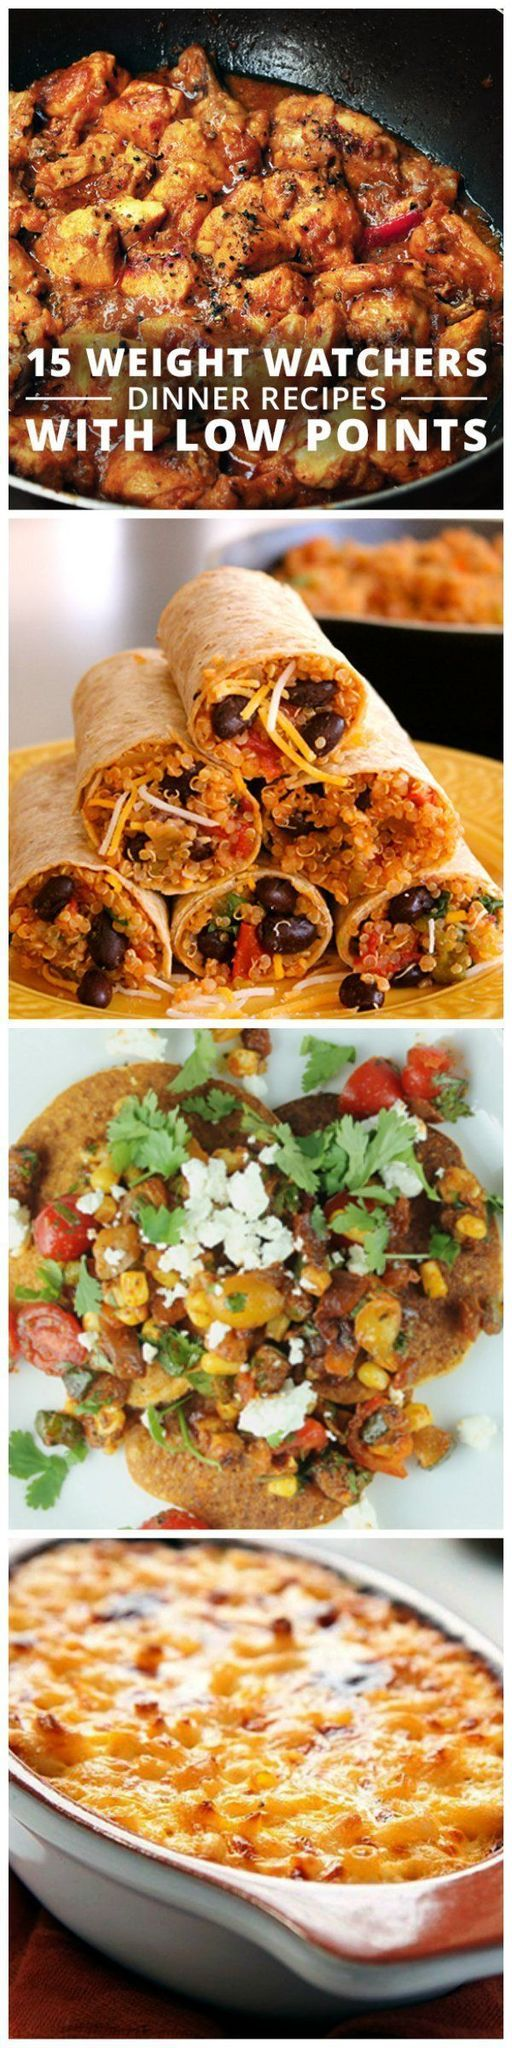 15 Weight Watchers Dinner Recipes With Low Points to tantalize your tastebuds!